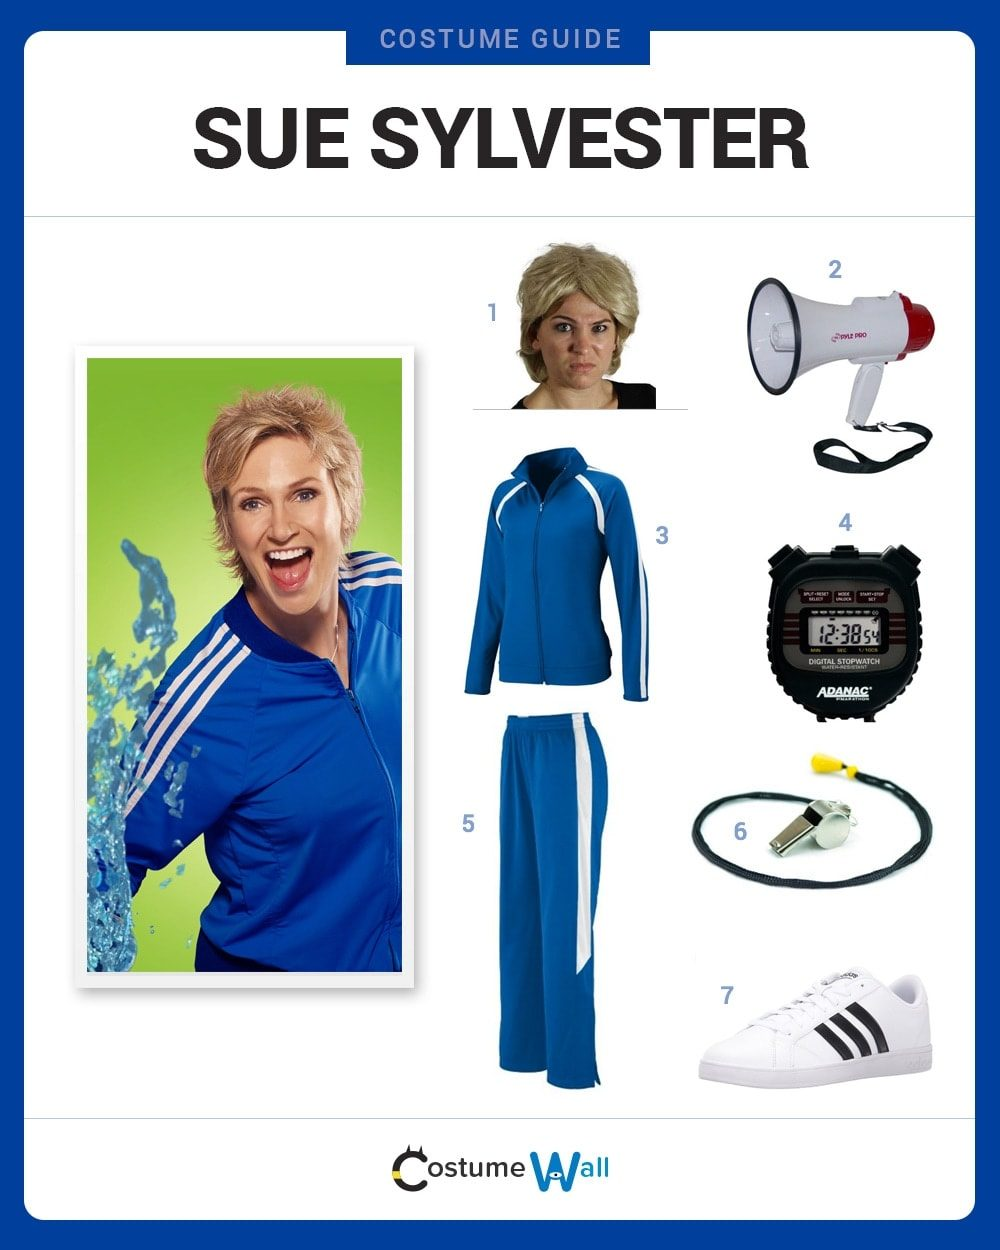 Sue Sylvester Costume Guide